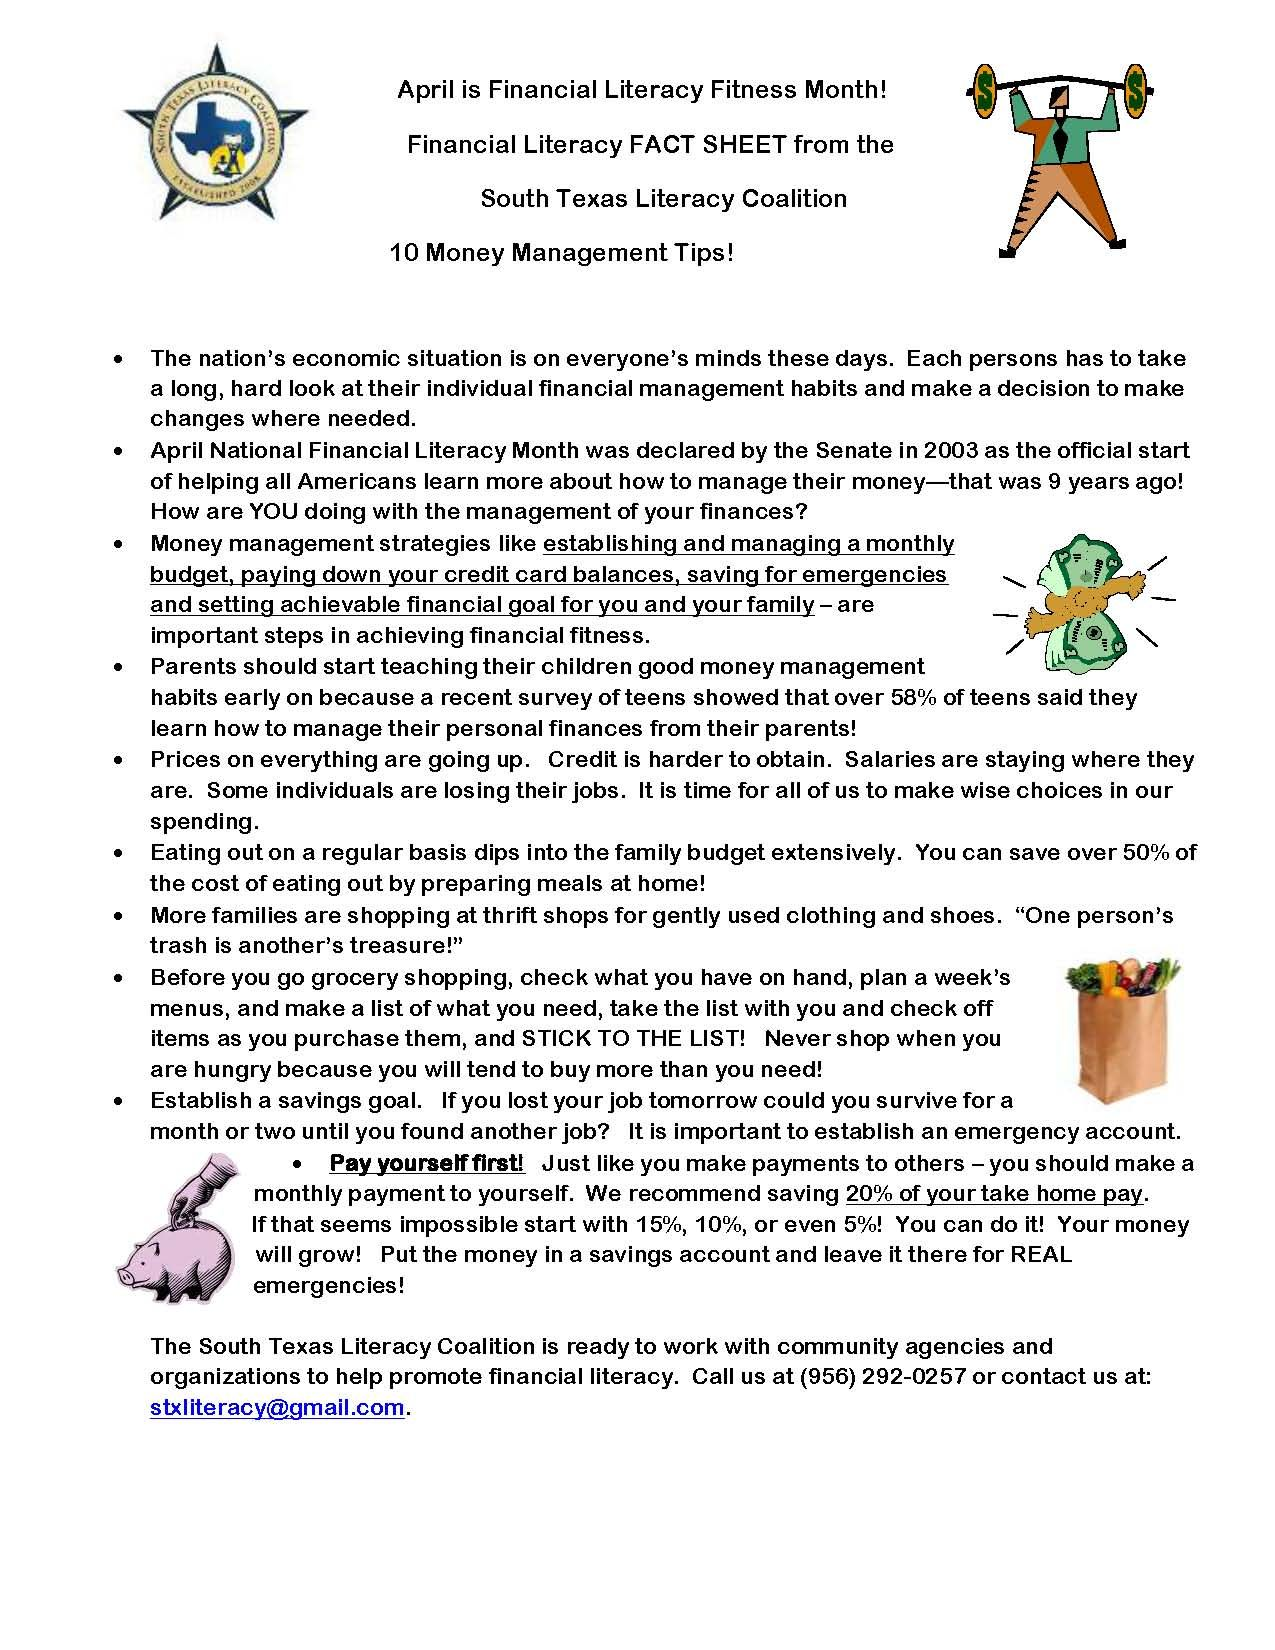 Financial Literacy Fact Sheet From The South Texas